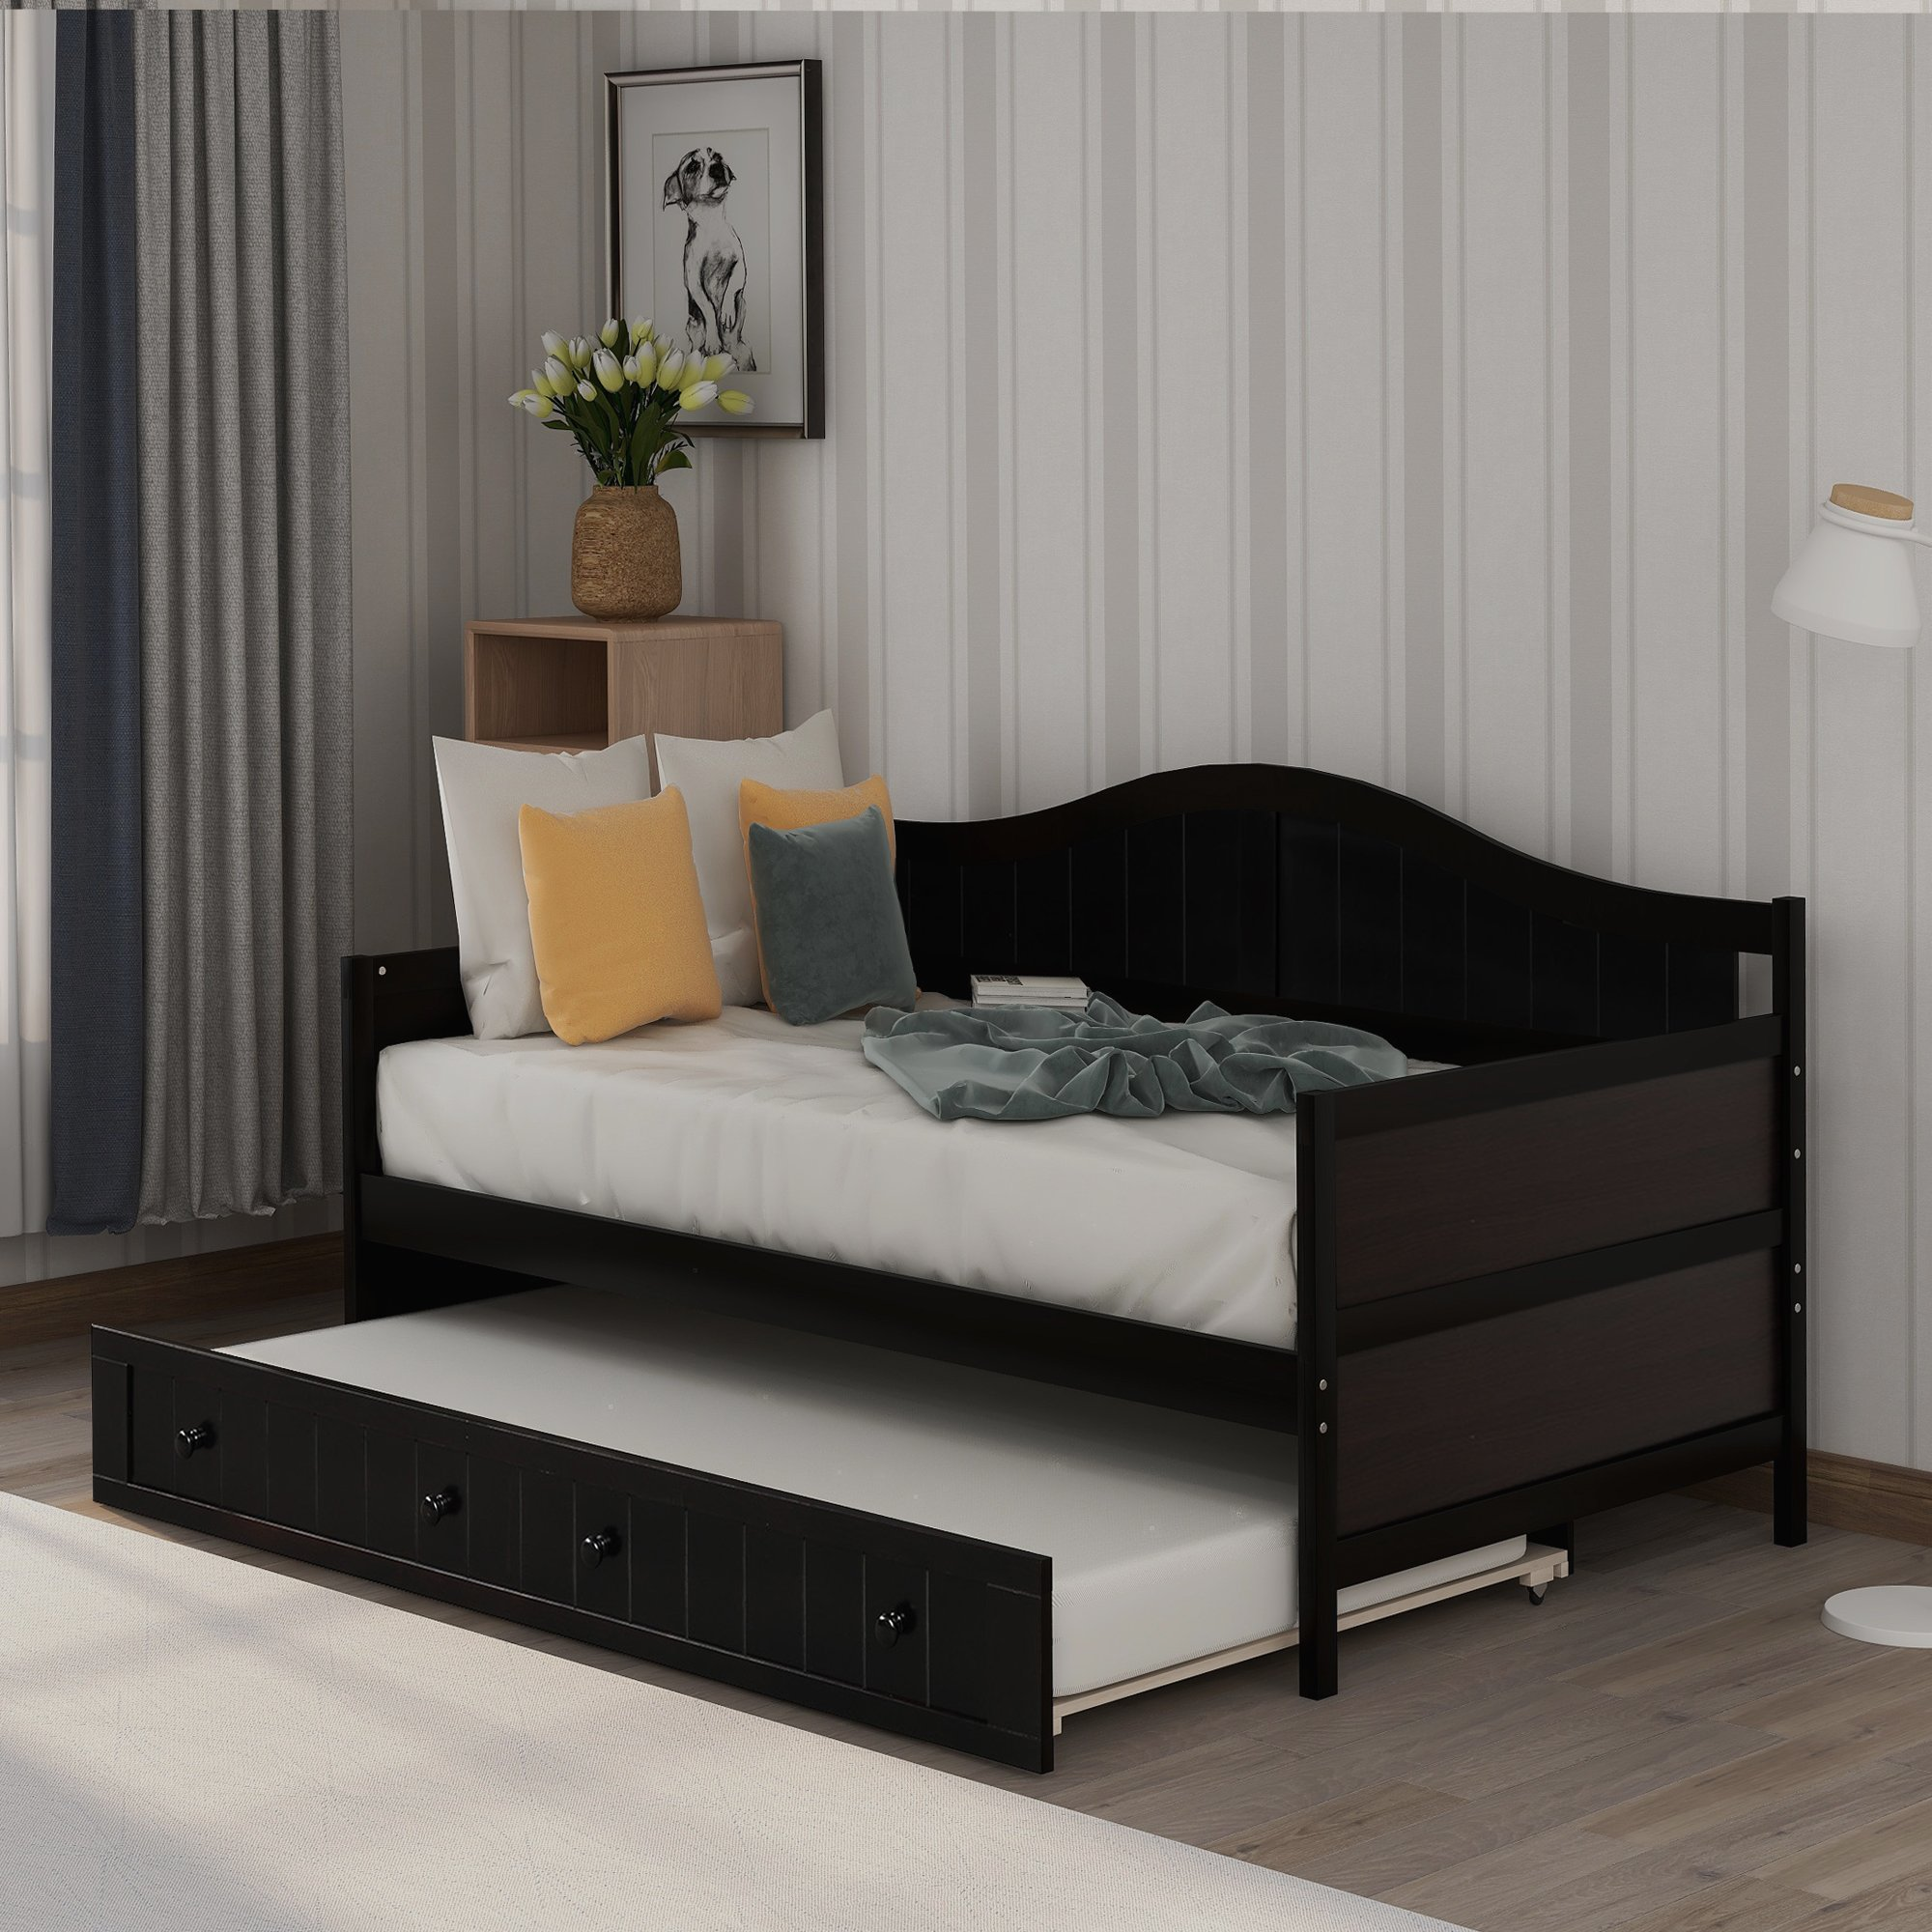 Twin Wooden Daybed with Trundle Bed, Sofa Bed for Bedroom ...